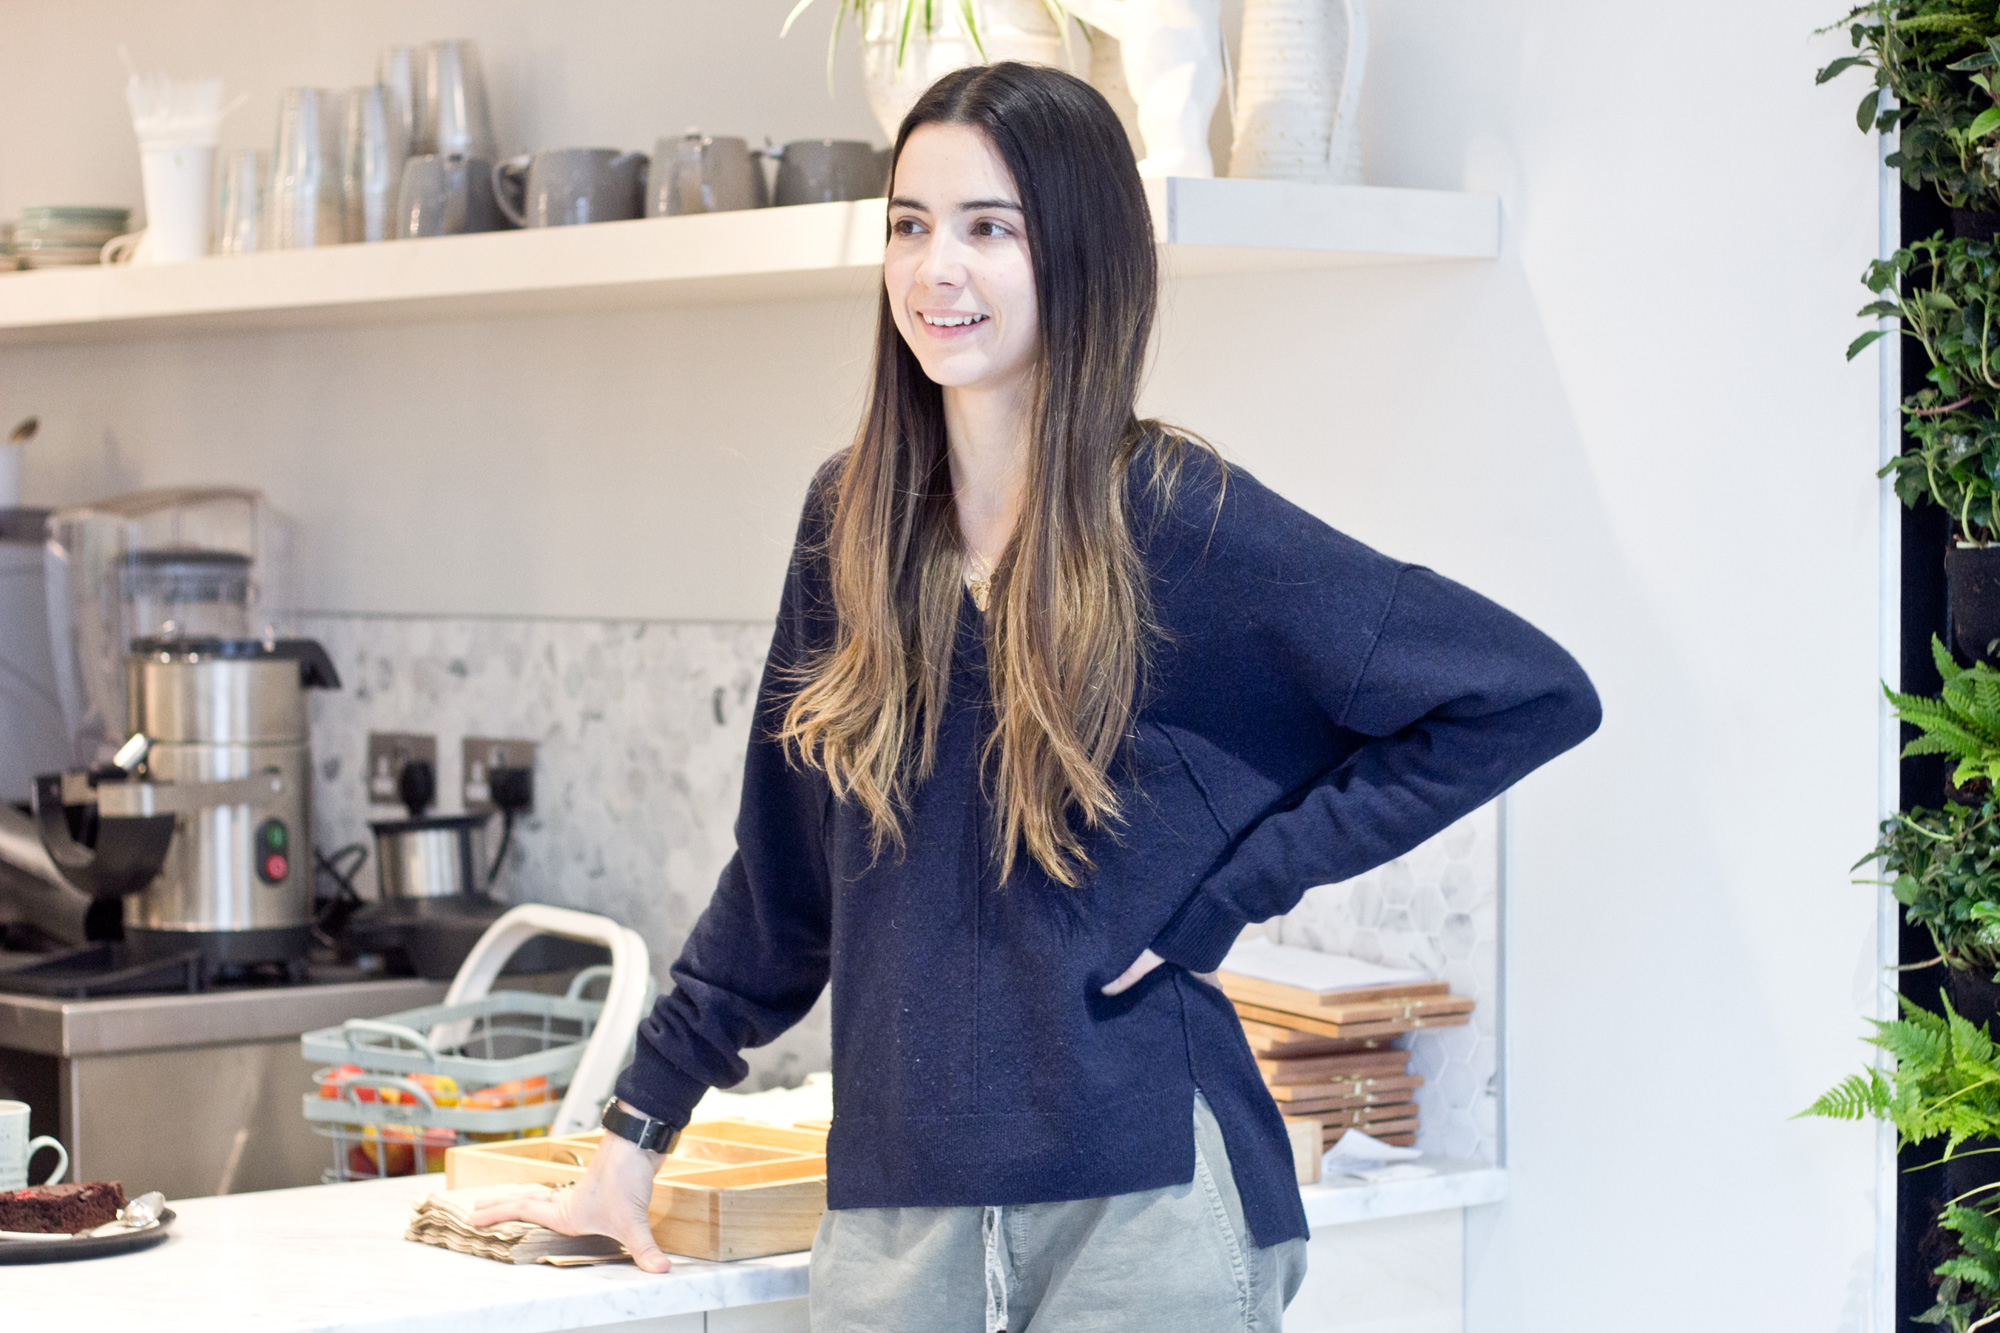 The Detox Kitchen's Lily Simpson On The New Deli & Flavour Over Calorie Counting